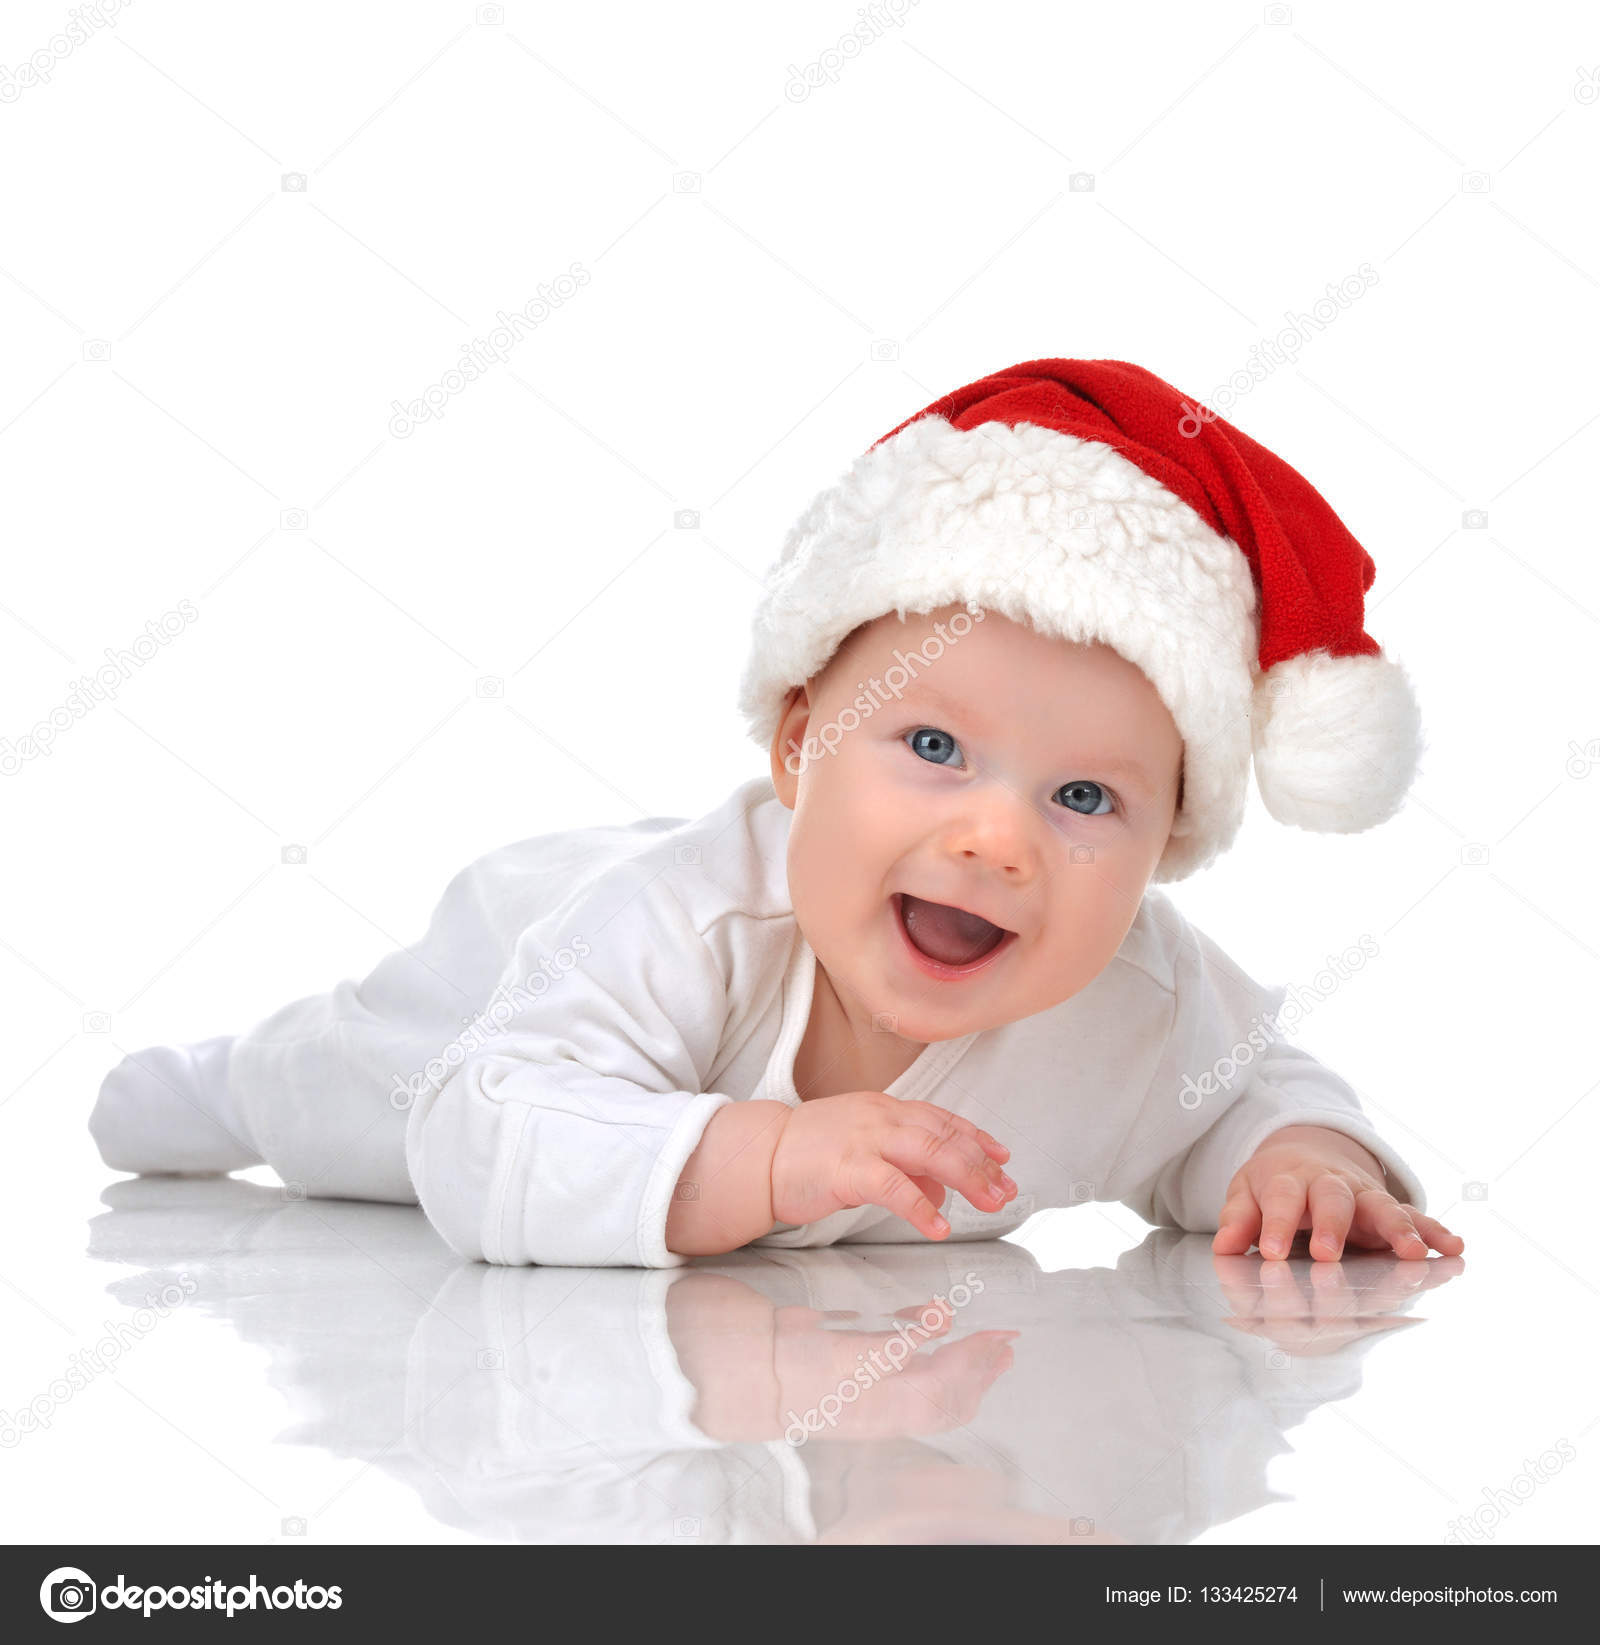 de8694ed830 Infant child baby girl lying in red christmas santa hat happy smiling  isolated on a white background — Photo by dml5050